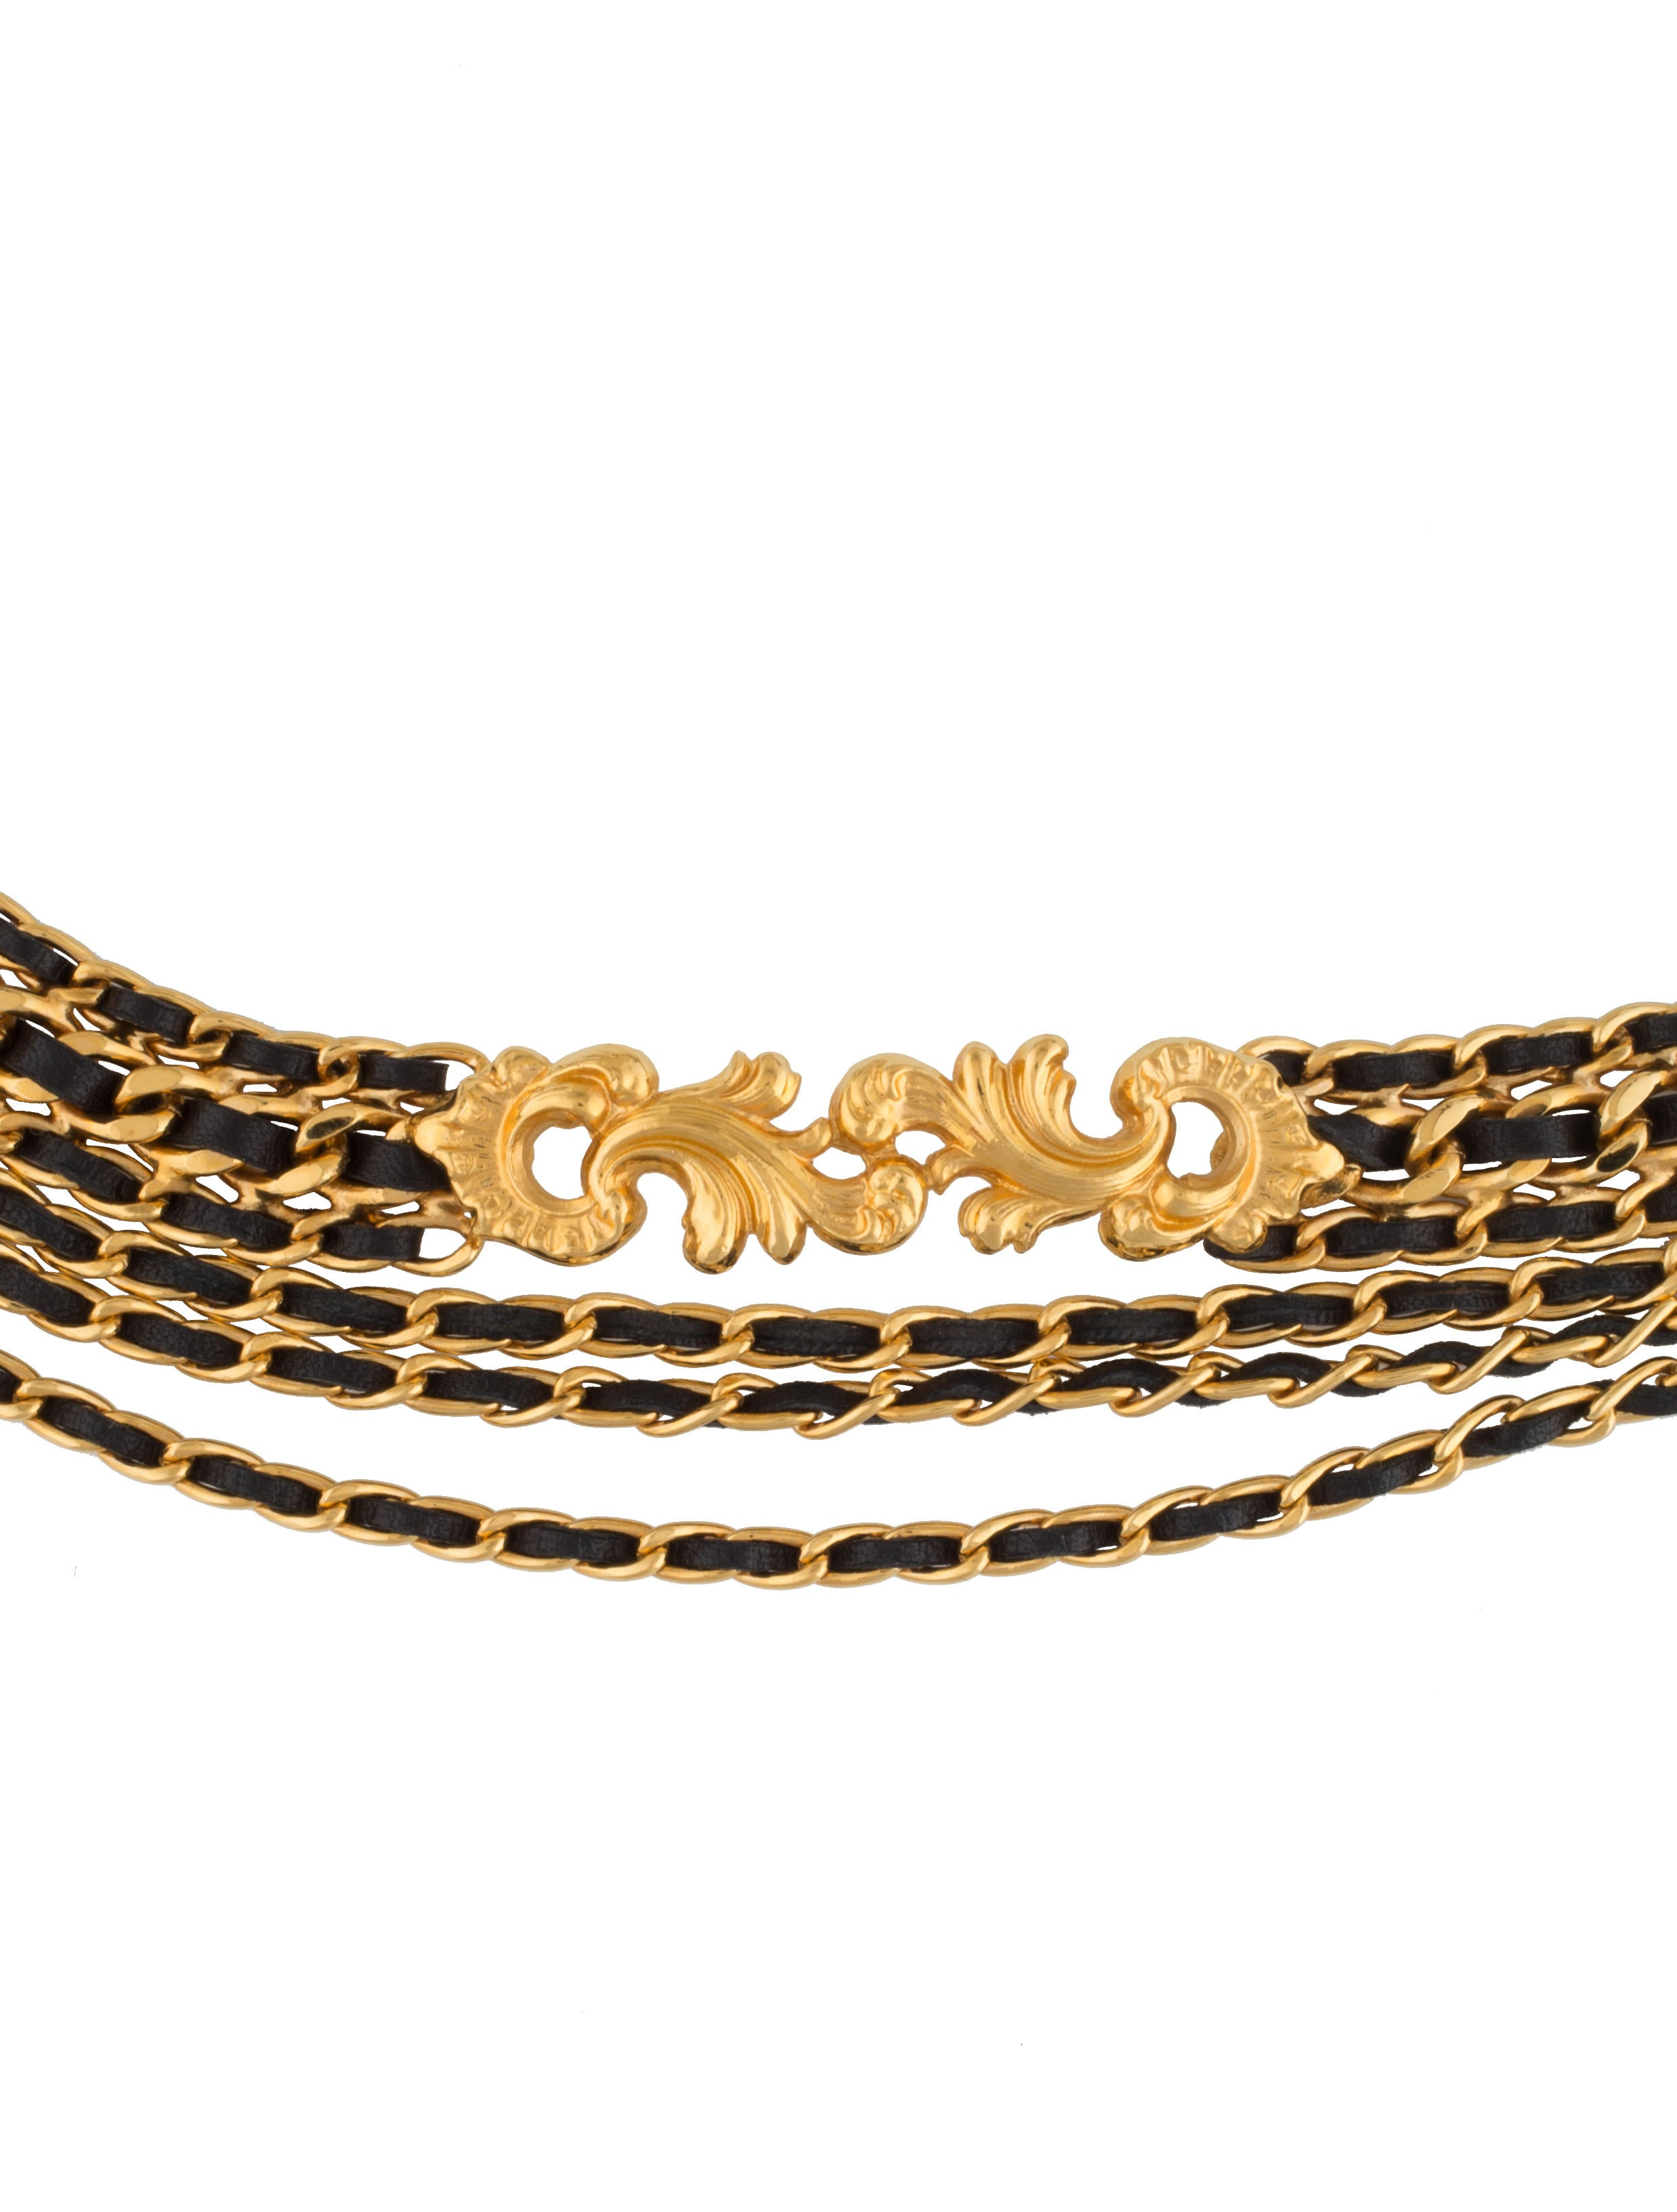 chanel leather chain belt accessories cha137896 the